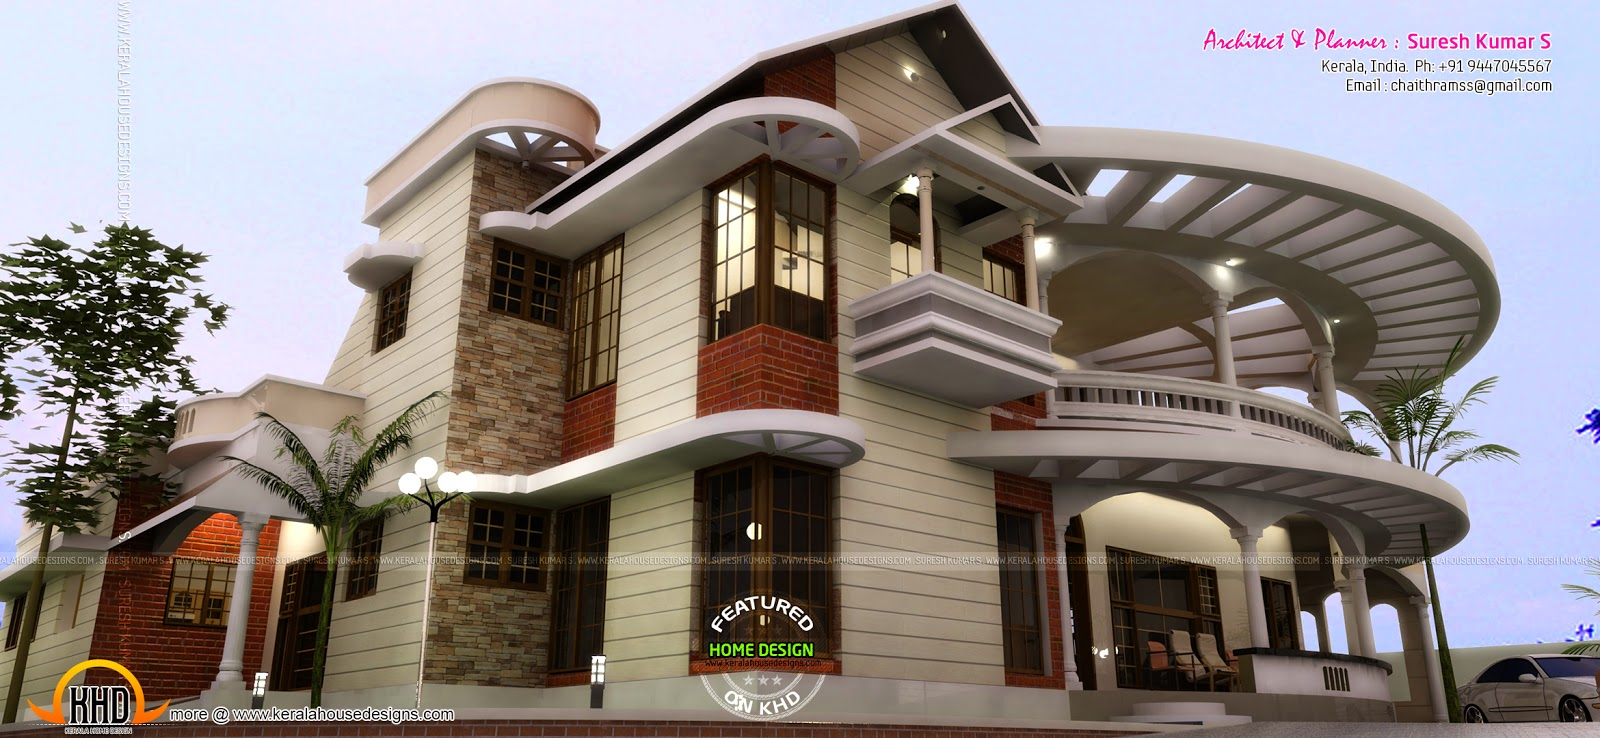 amazing in house design. Great home design  Facilities in this house August 2014 Kerala and floor plans